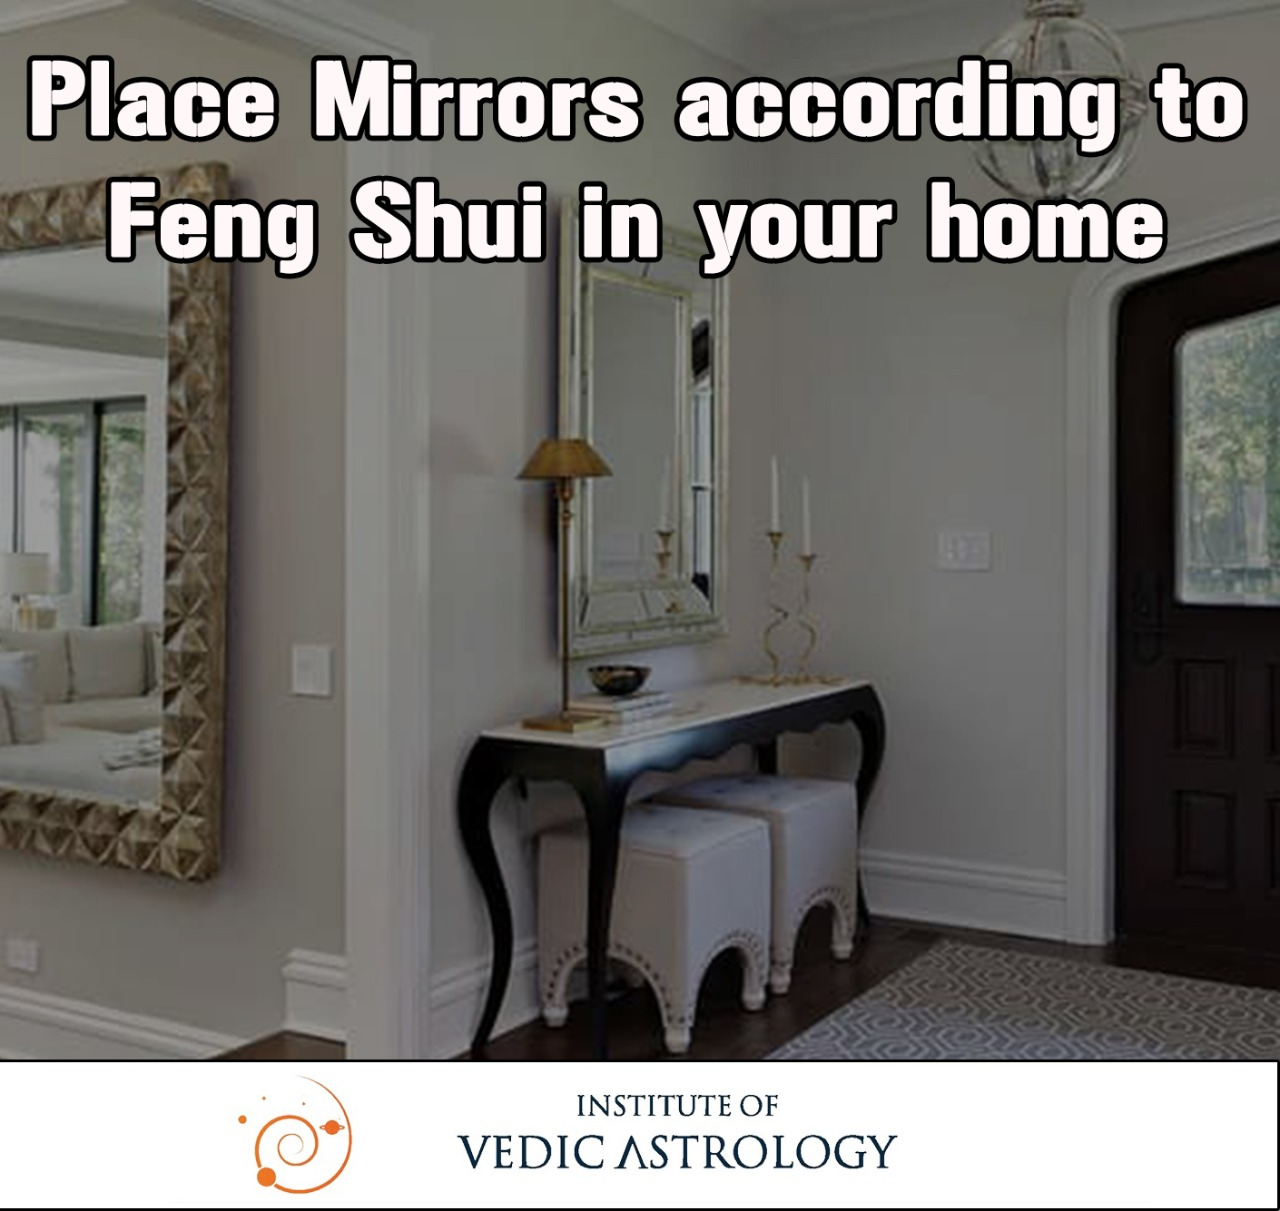 Place Mirrors according to Feng Shui in your Home